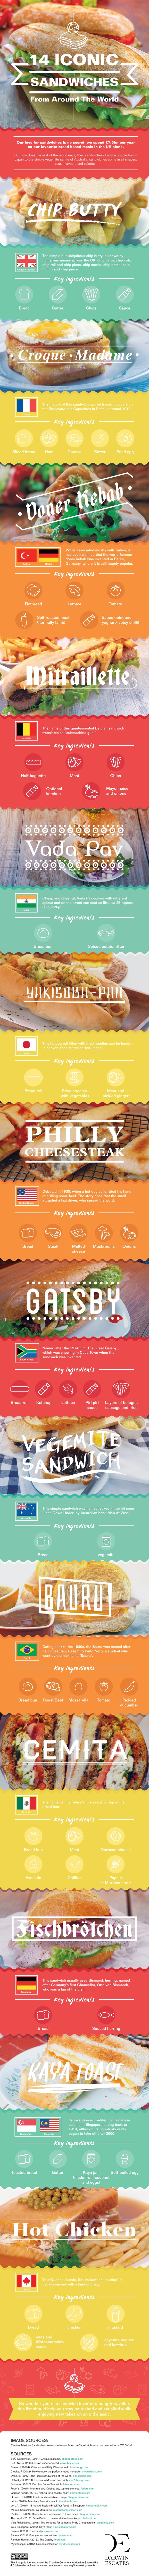 iconic-sandwiches-from-around-the-world